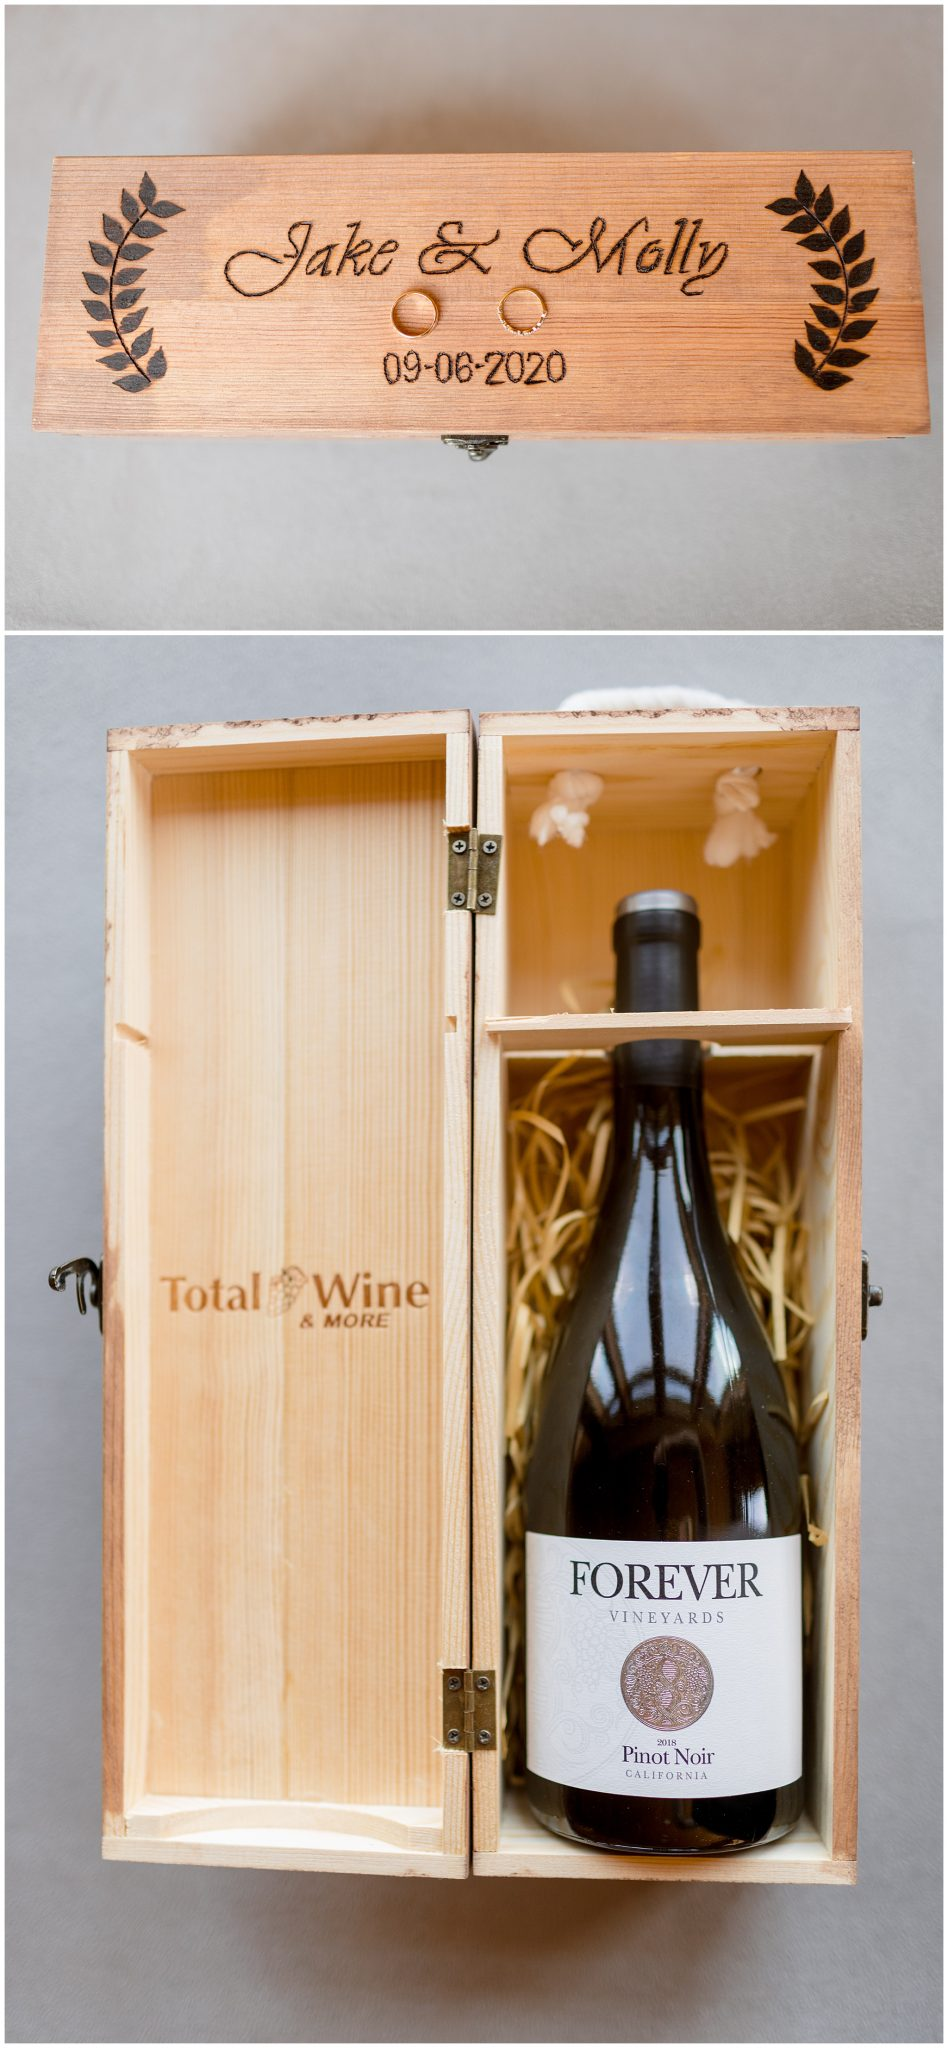 Love this idea of sealing a box with wine and letters to open on your five year wedding anniversary